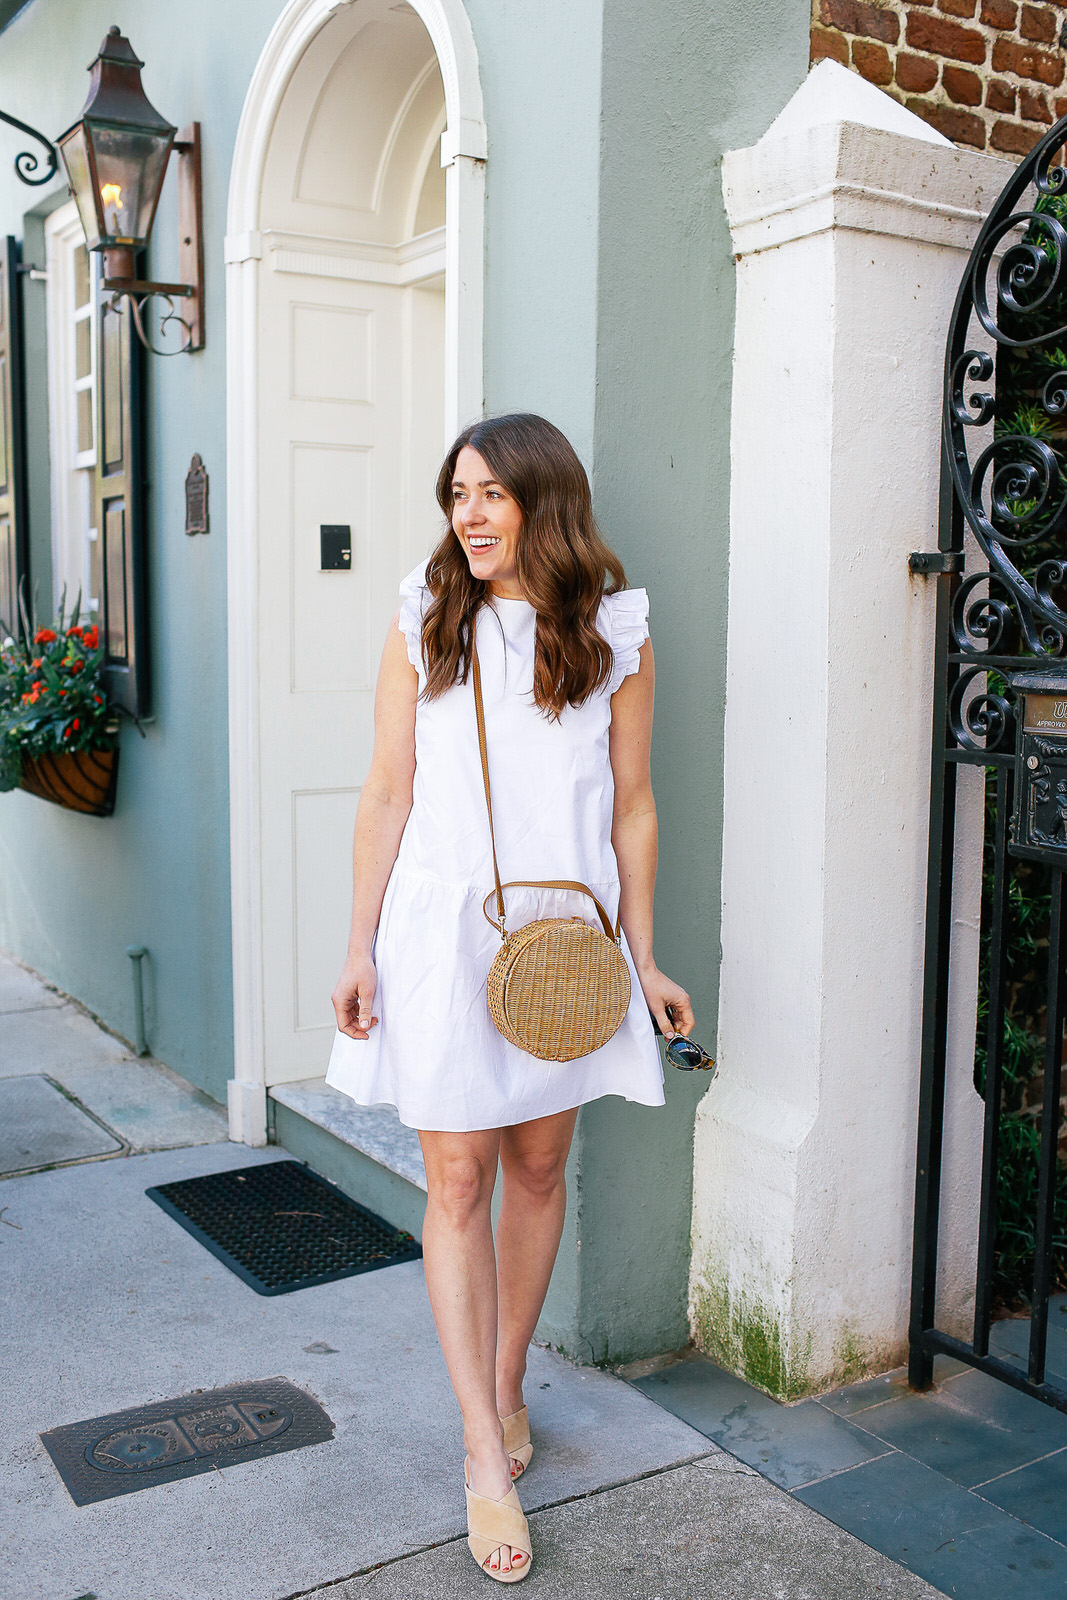 anthropologie-white-dress-serpui-wicker-bag-and-sigerson-morrison-slides-4-of-7